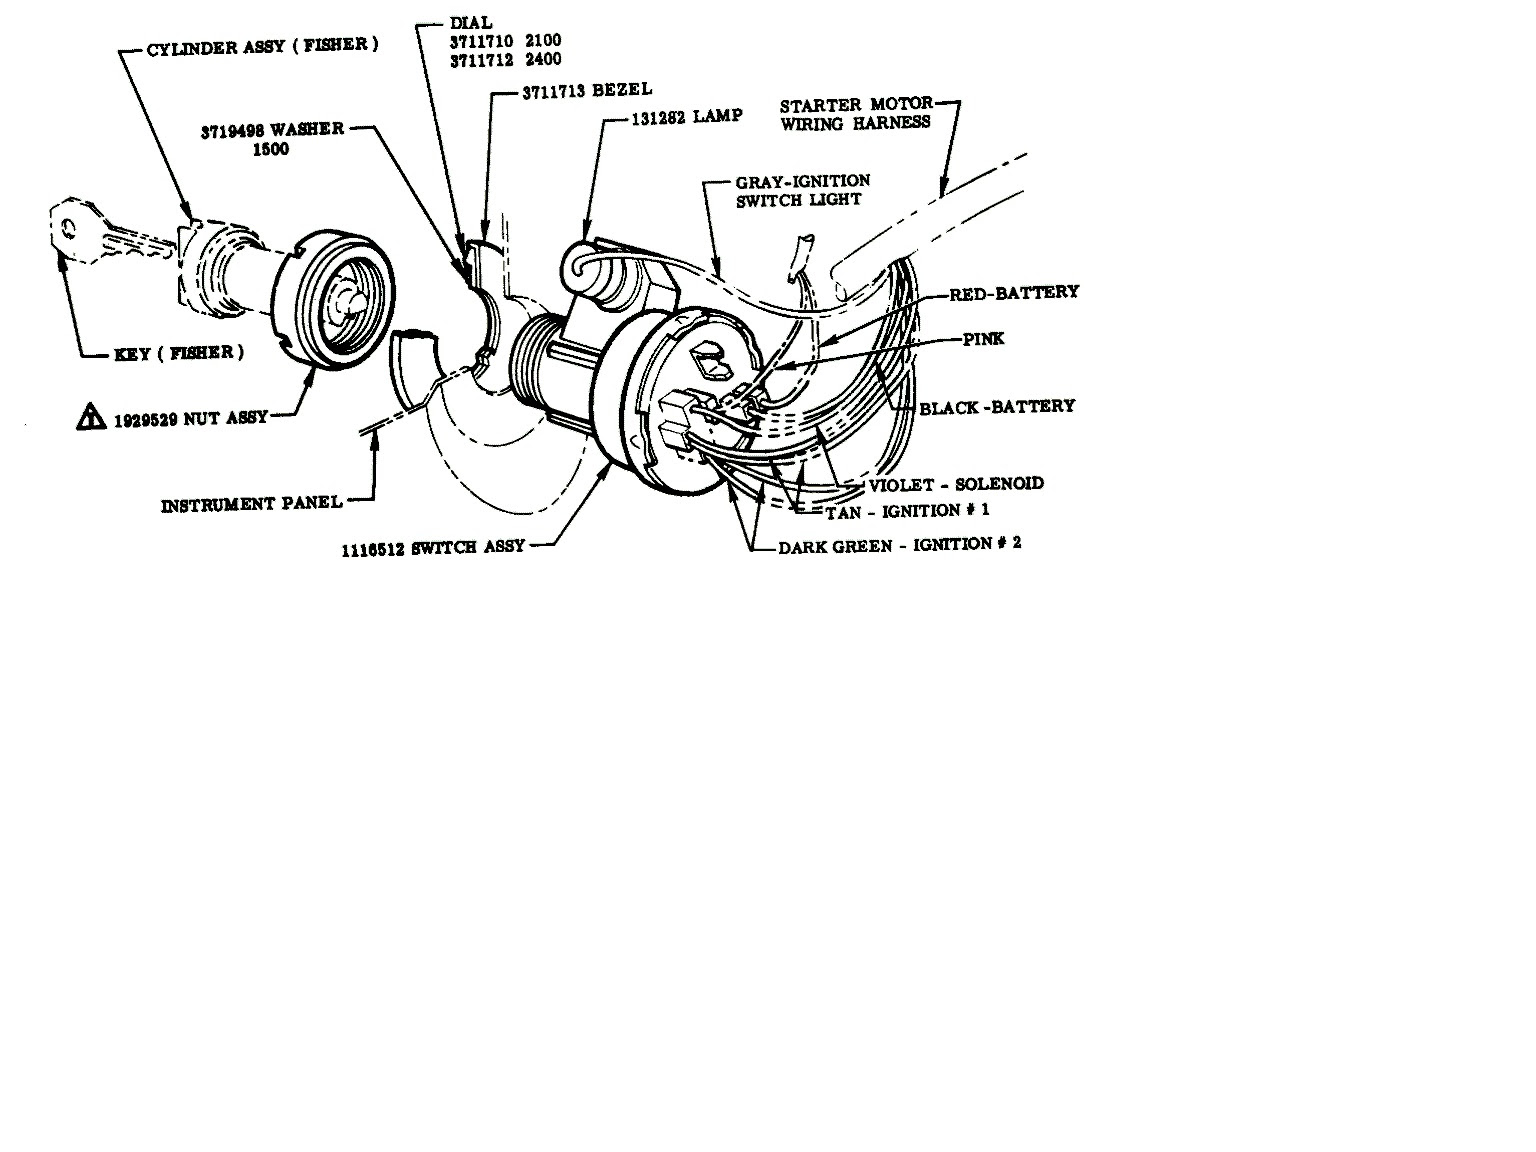 Diagram 1983 Chevy Ignition Switch Wiring Diagram Full Version Hd Quality Wiring Diagram Diagrampcy Orbicolare It